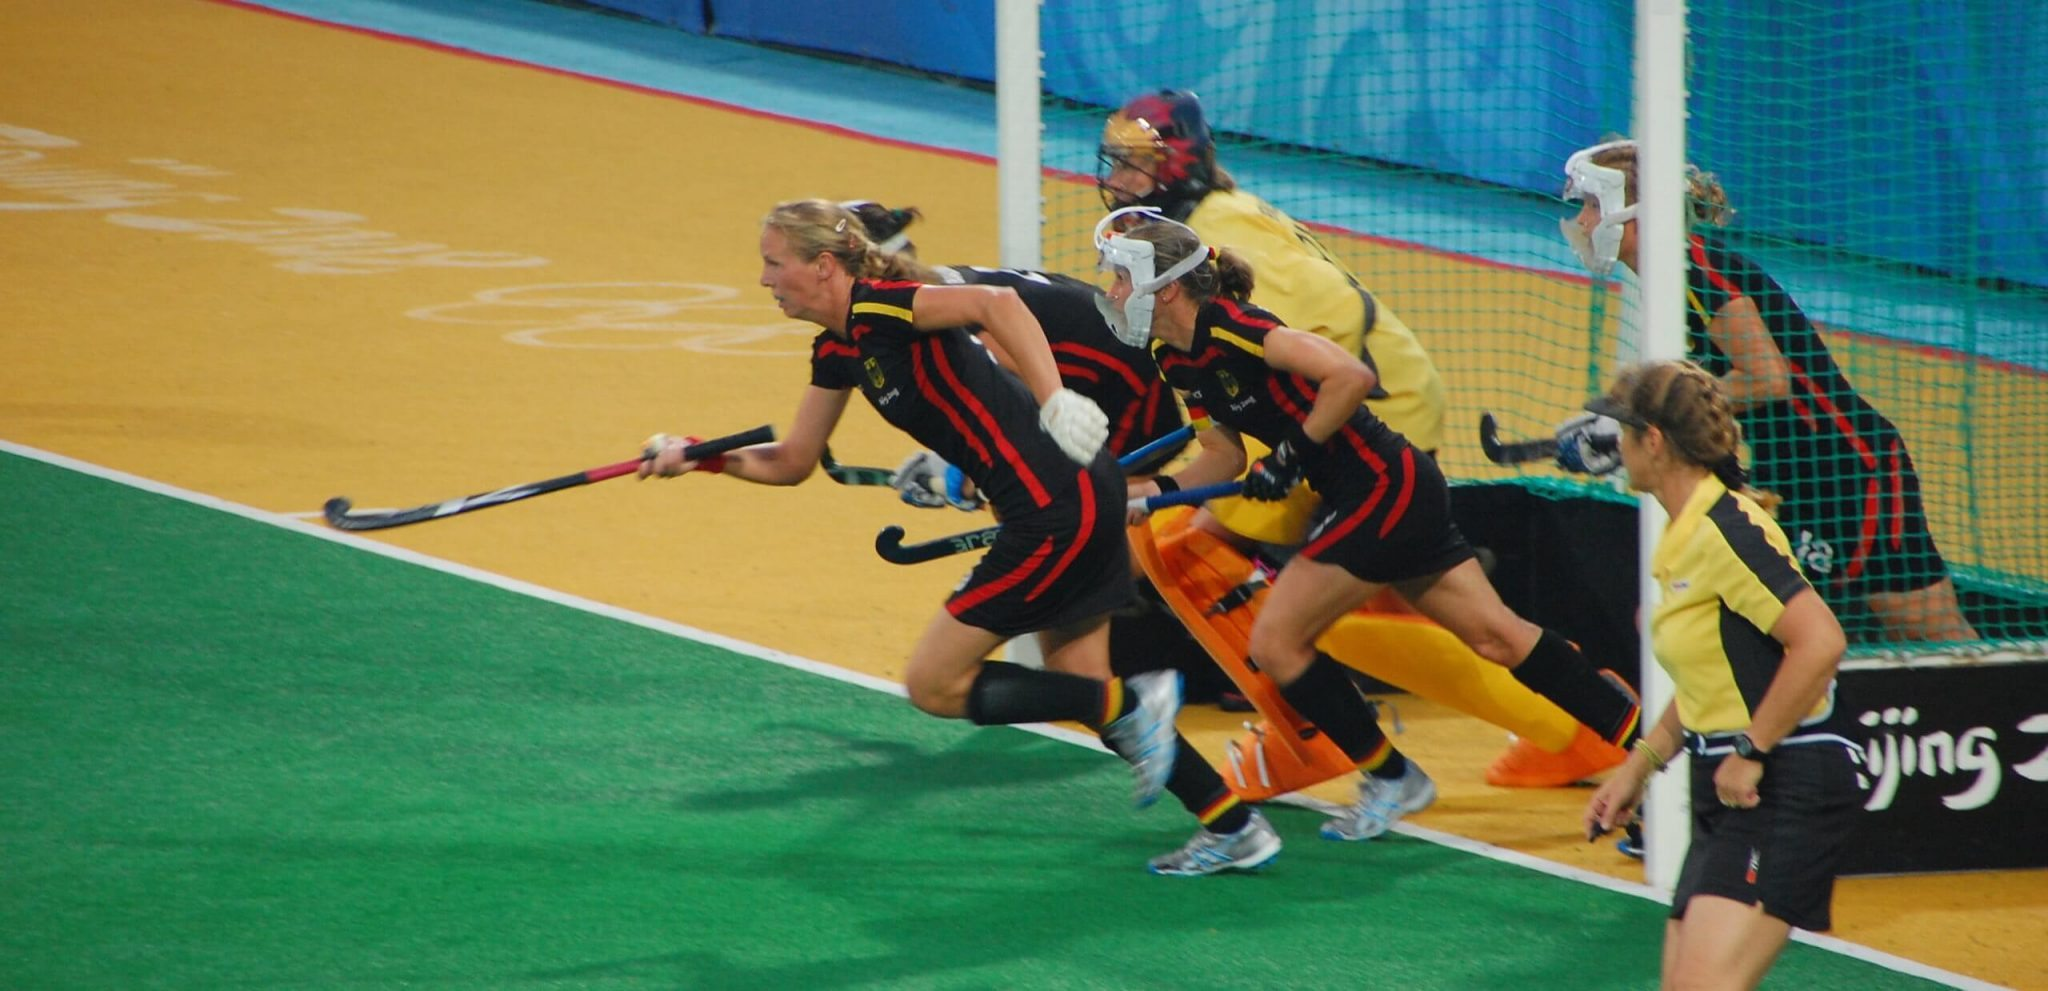 A game of field hockey underway at the 2008 Beijing Olympics